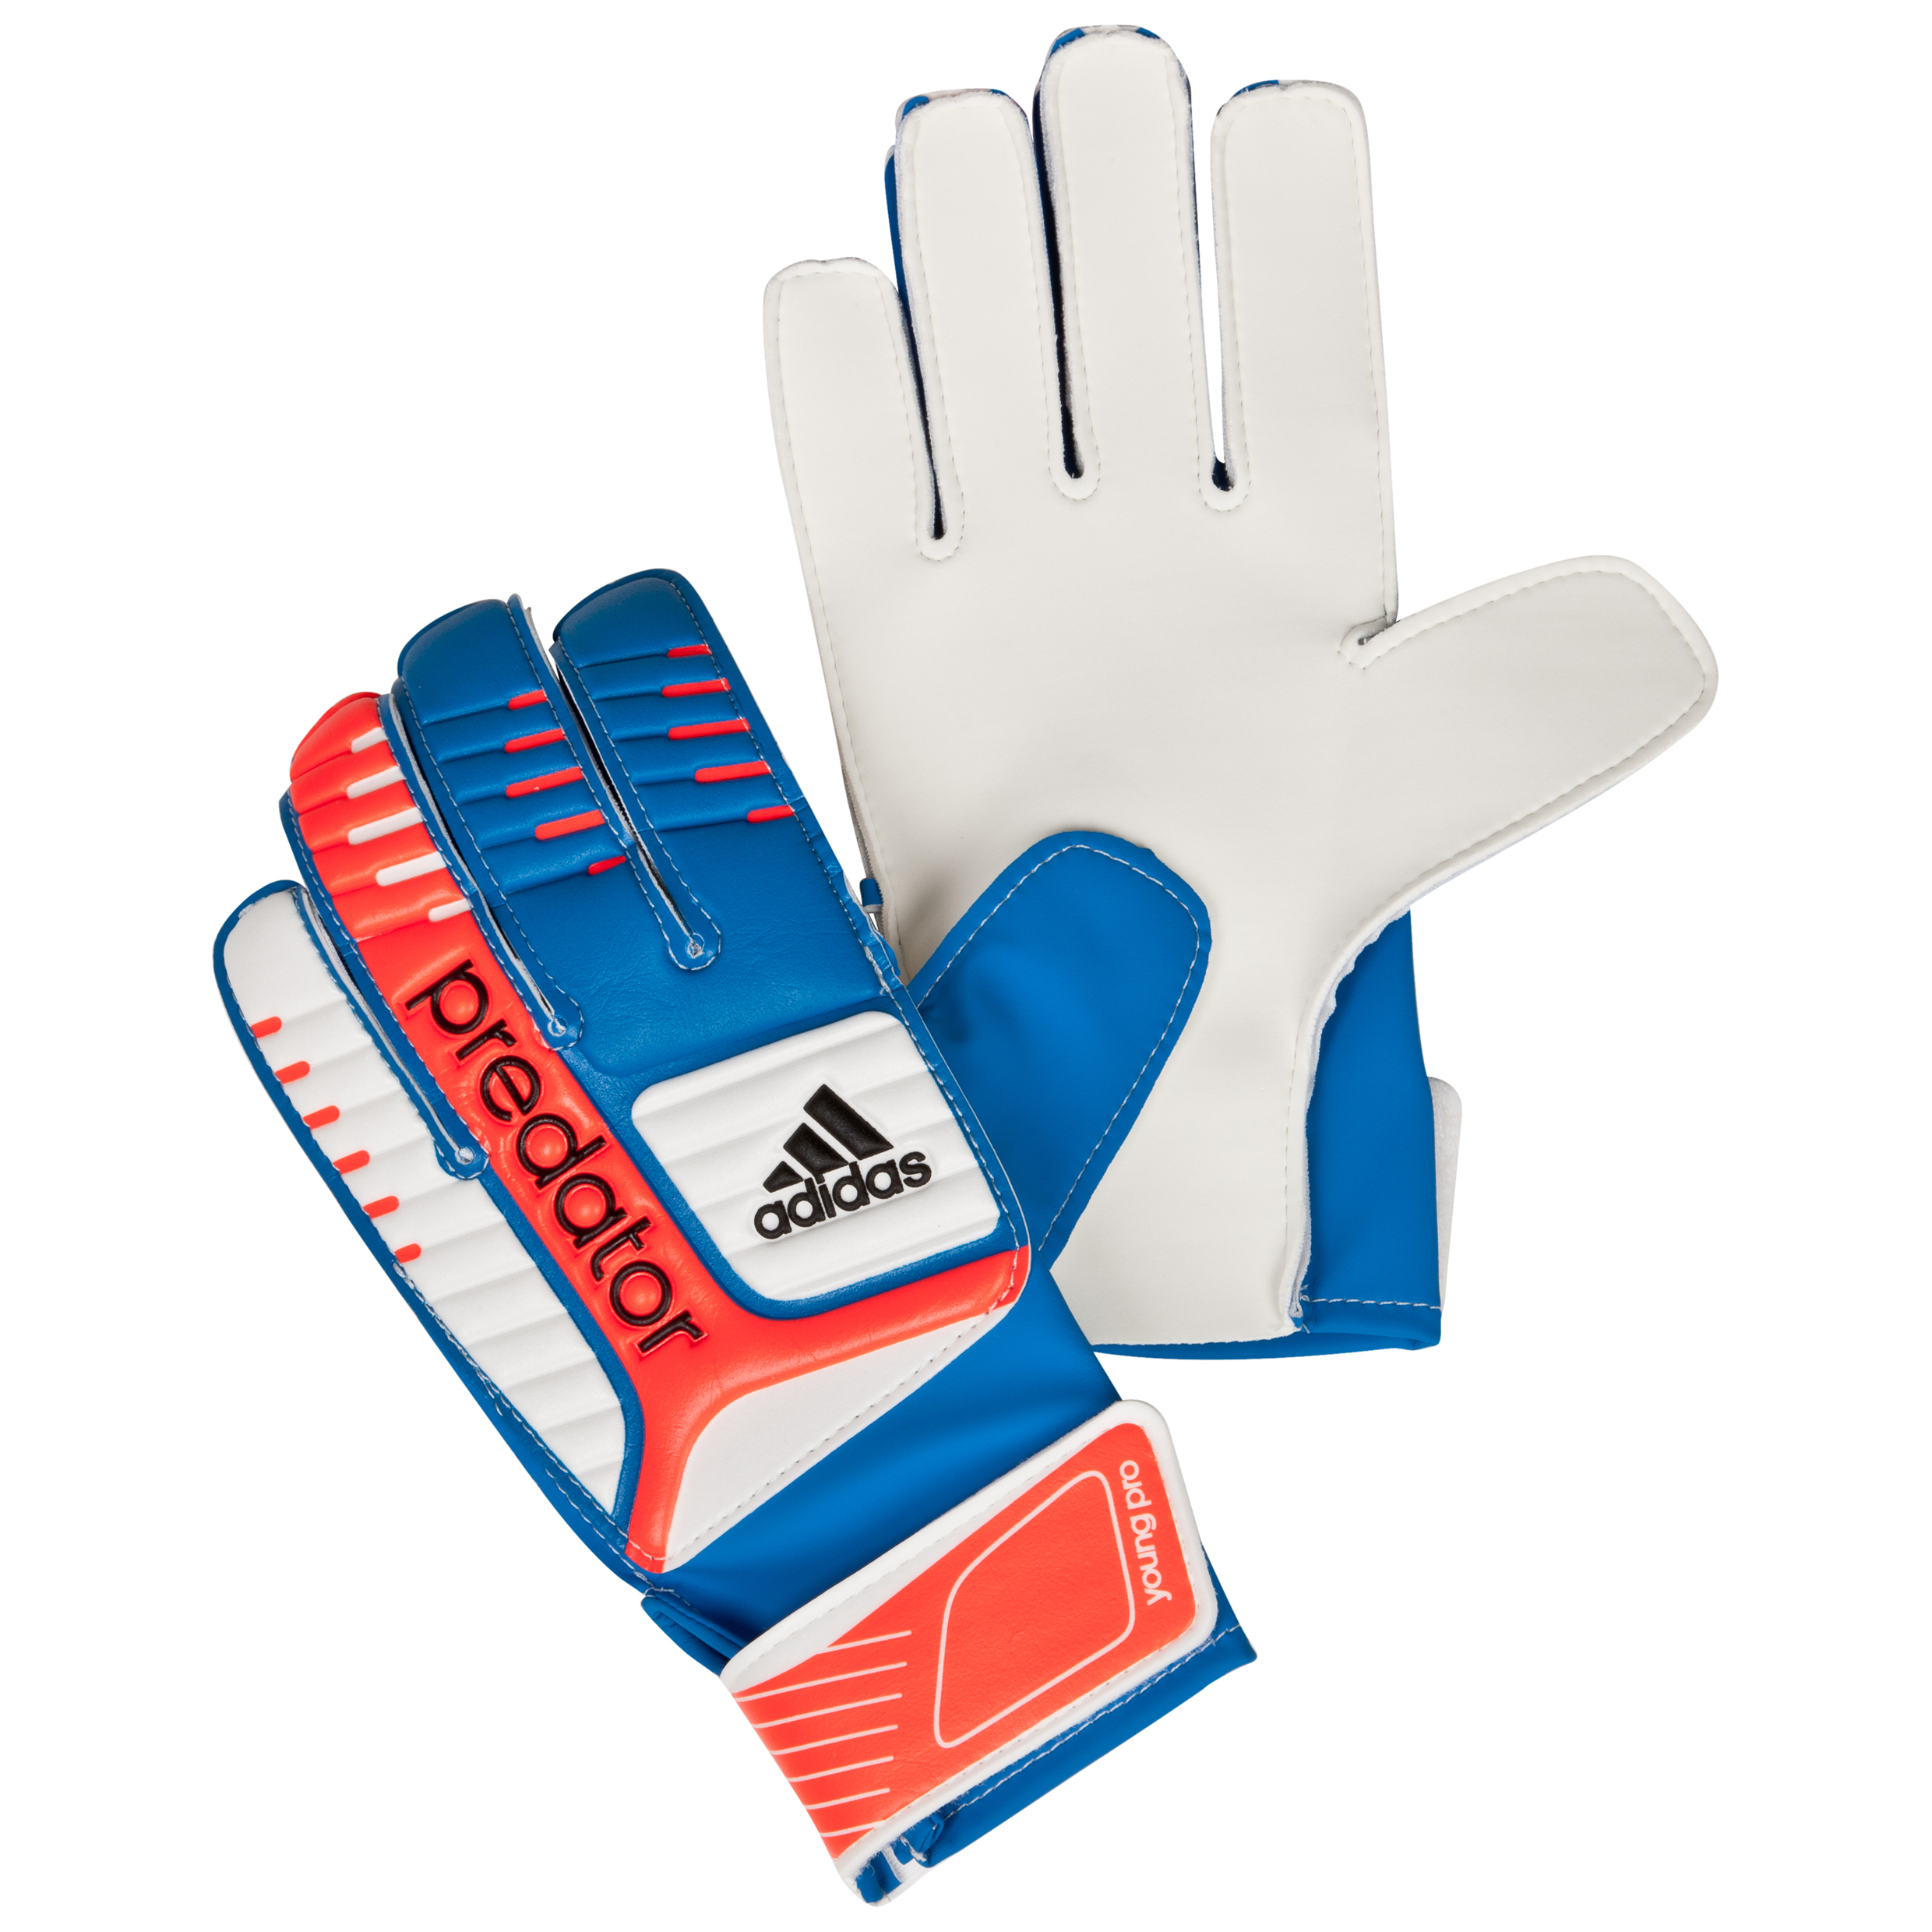 adidas Predator Young Pro Goalkeeper Gloves - Infrared/Bright Blue/White